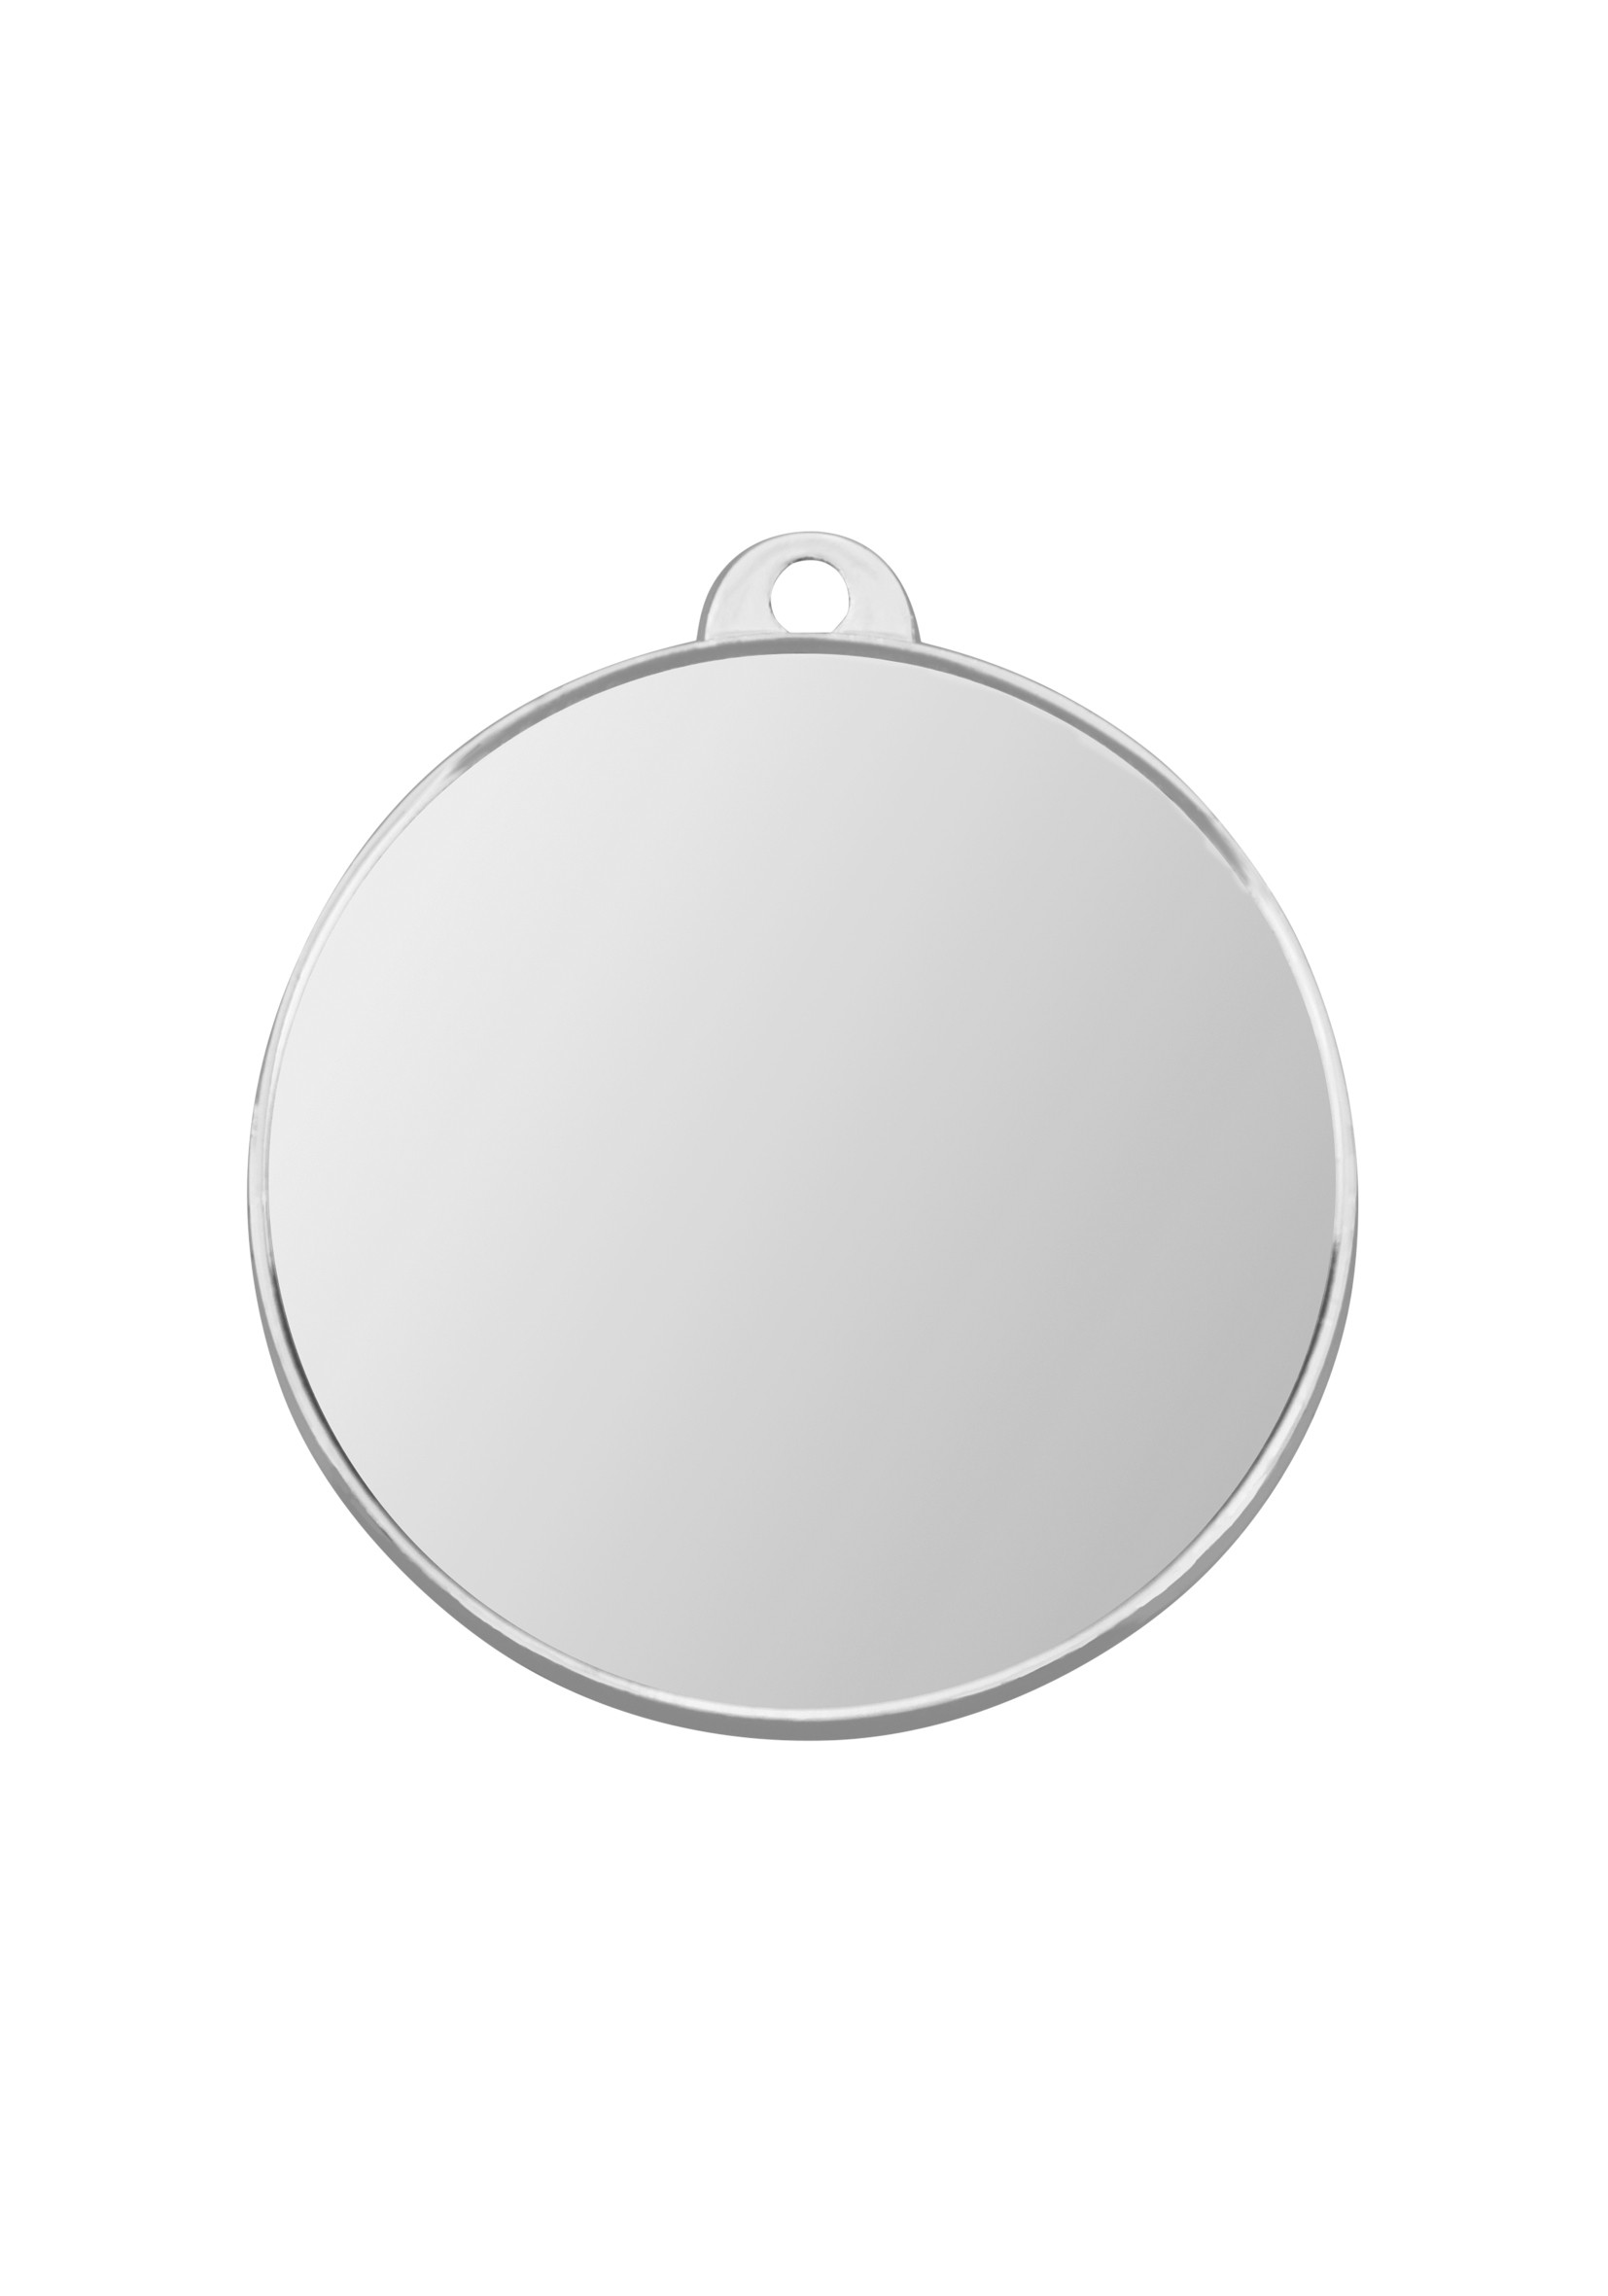 MB (P) 50mm Sil Finish Plain Medal with loop